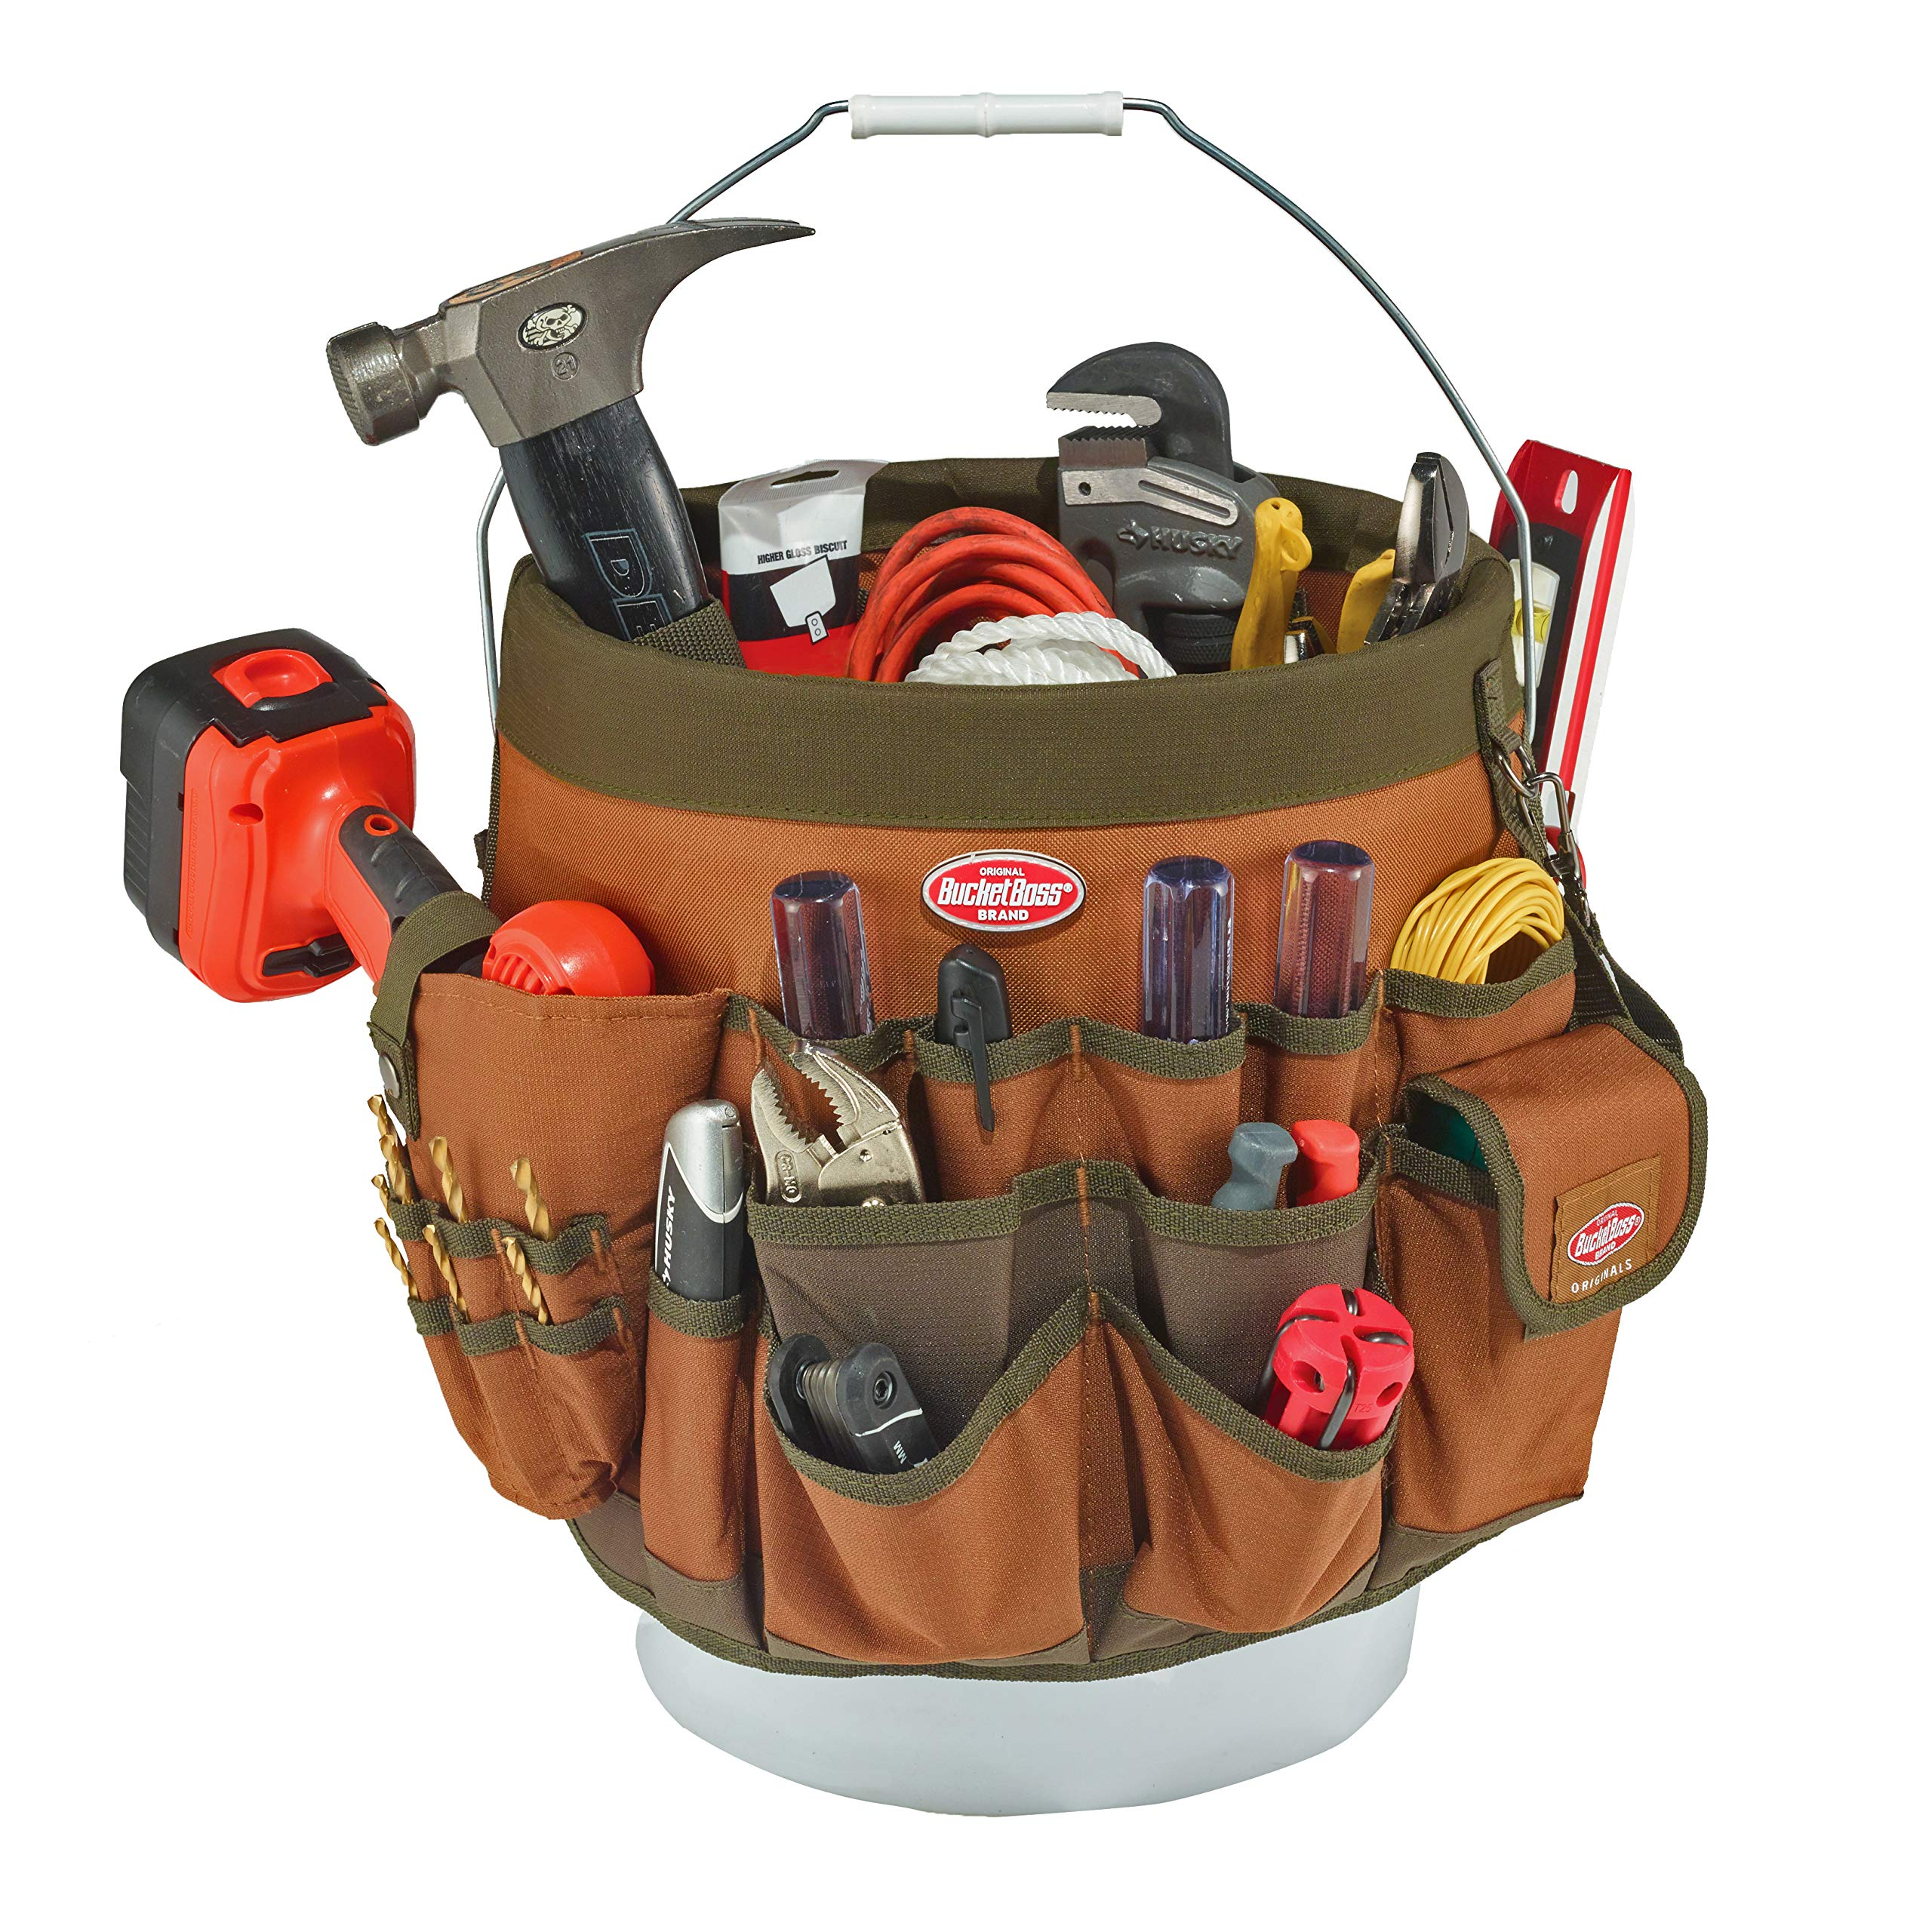 Bucket Boss 56 Bucket Tool Organizer in Brown, 10056 by Bucket Boss (Image #2)